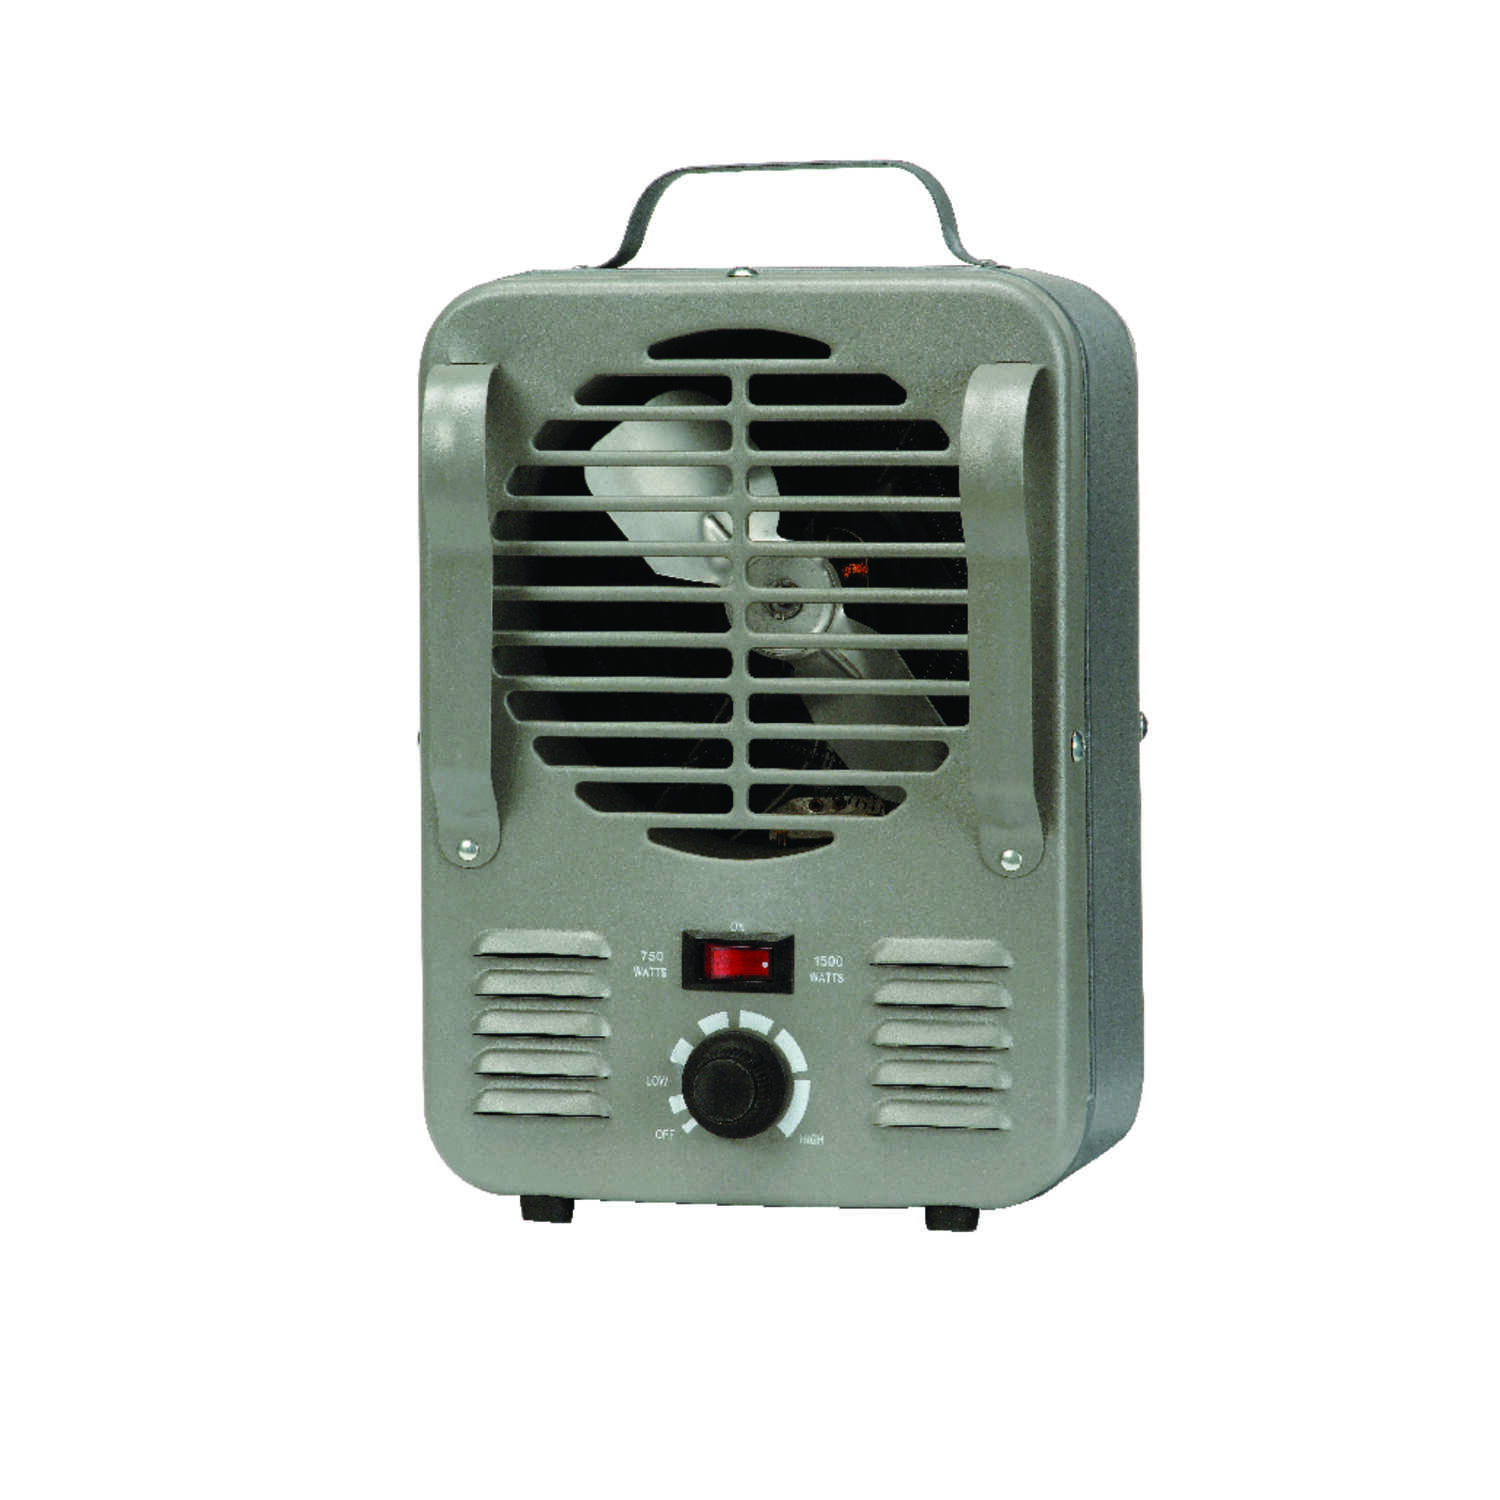 Soleil Milk House 200 Sq Ft Electric Utility Heater